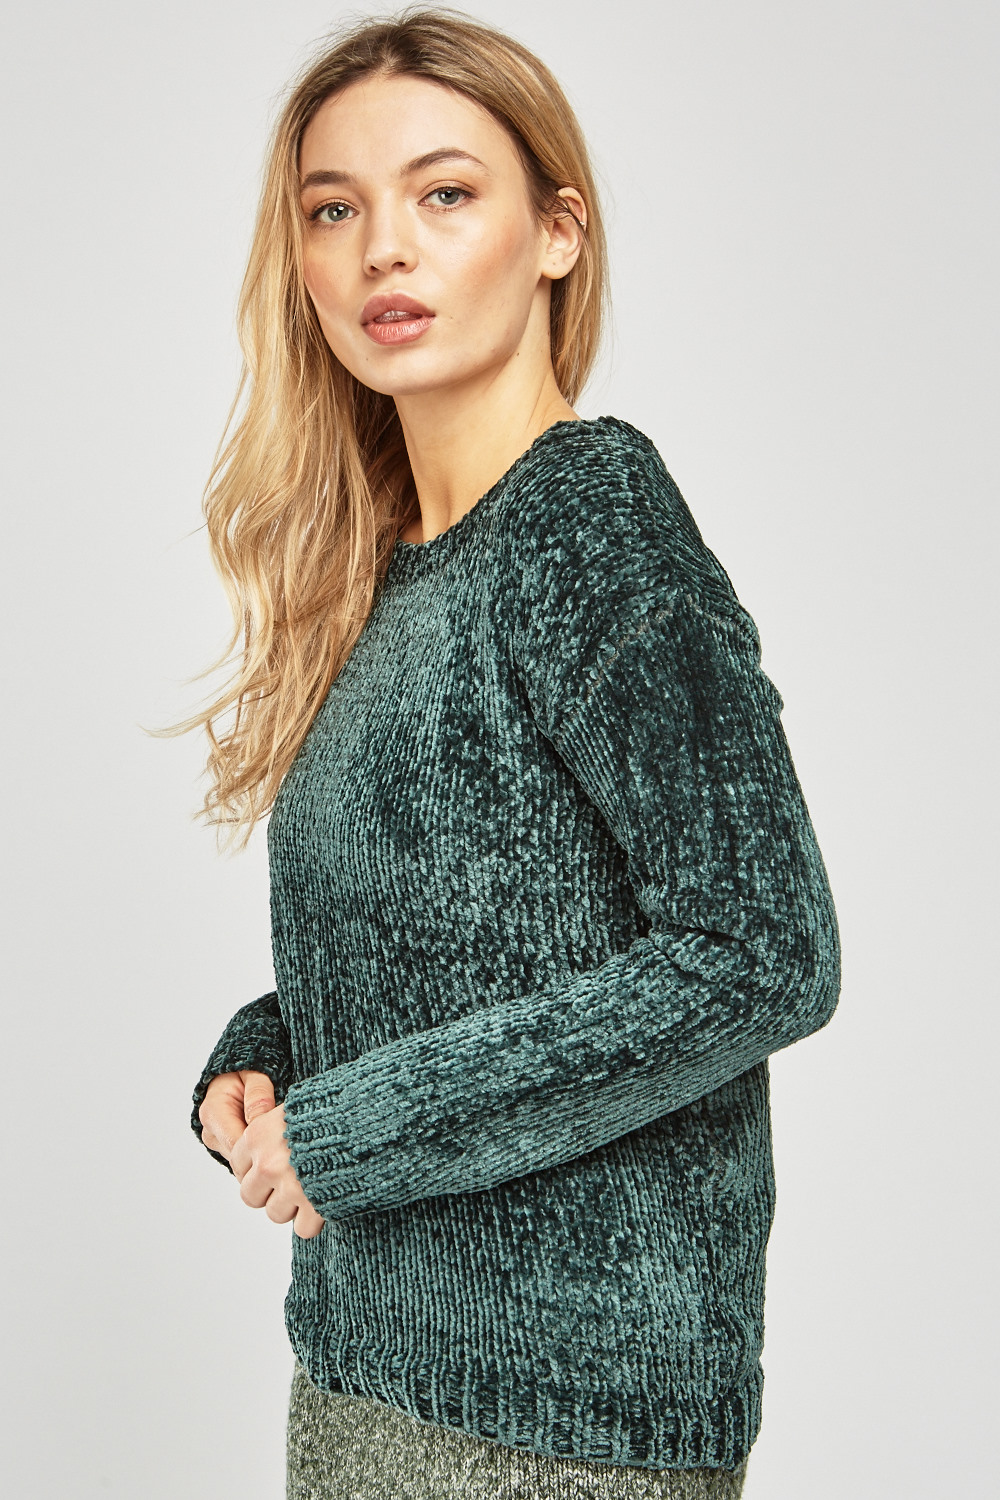 32660ca2c587 Round Neck Green Chenille Knit Jumper - Just £5